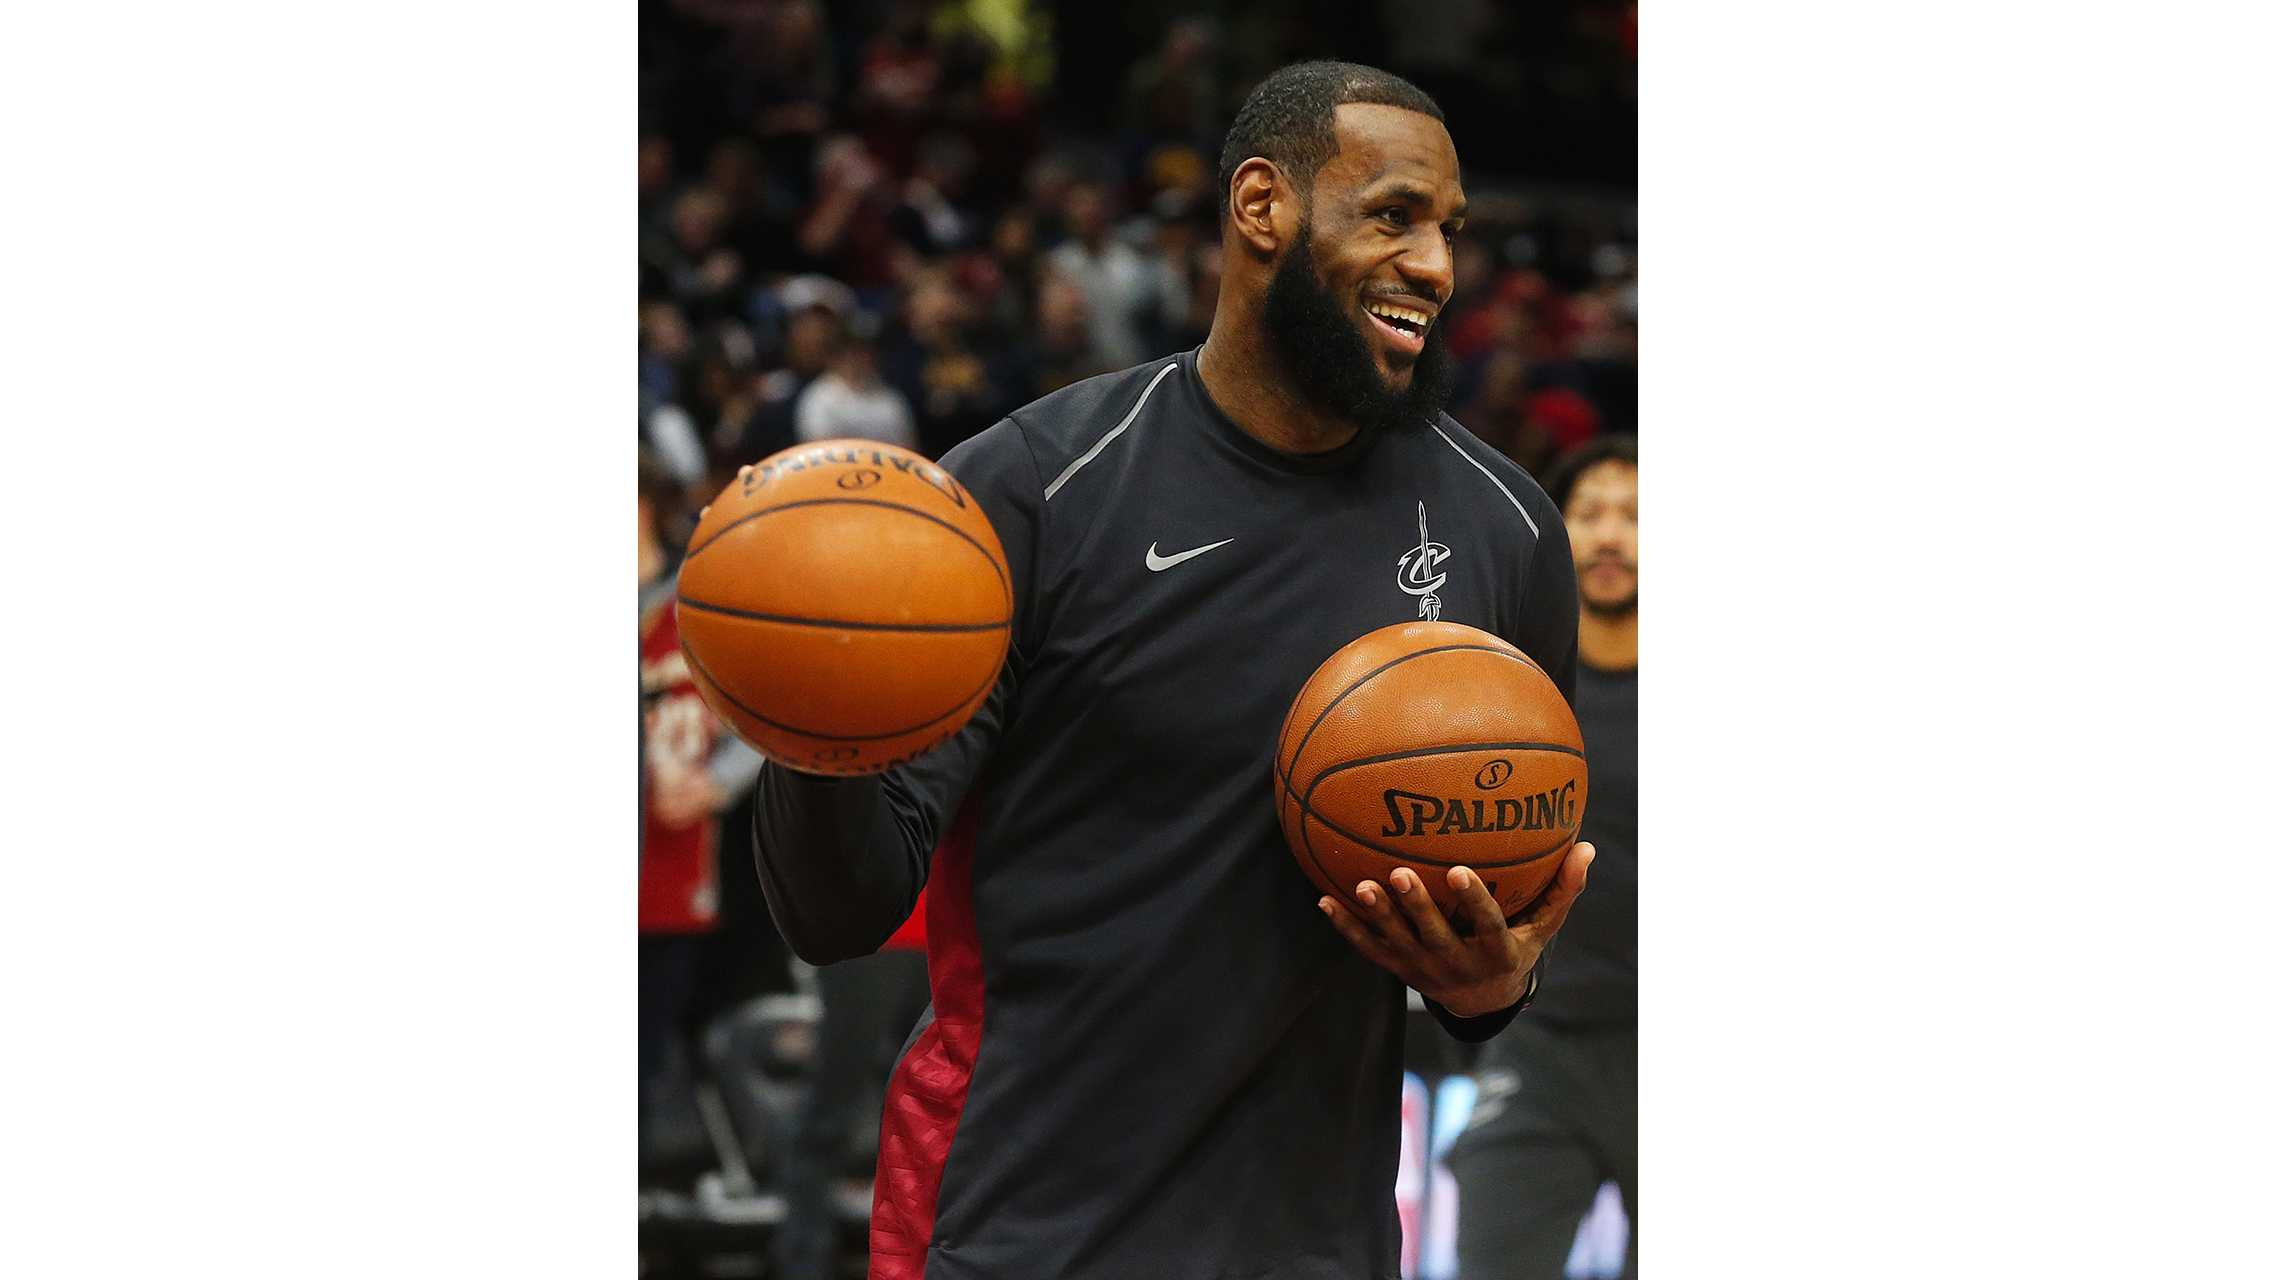 Cleveland Cavaliers forward LeBron James shares a laugh in warm-ups before taking on the Oklahoma City Thunder on Saturday, Jan. 20, 2018, at Quicken Loans Arena in Cleveland, Ohio. The Thunder won, 148-124. (Leah Klafczynski/Akron Beacon Journal/TNS)